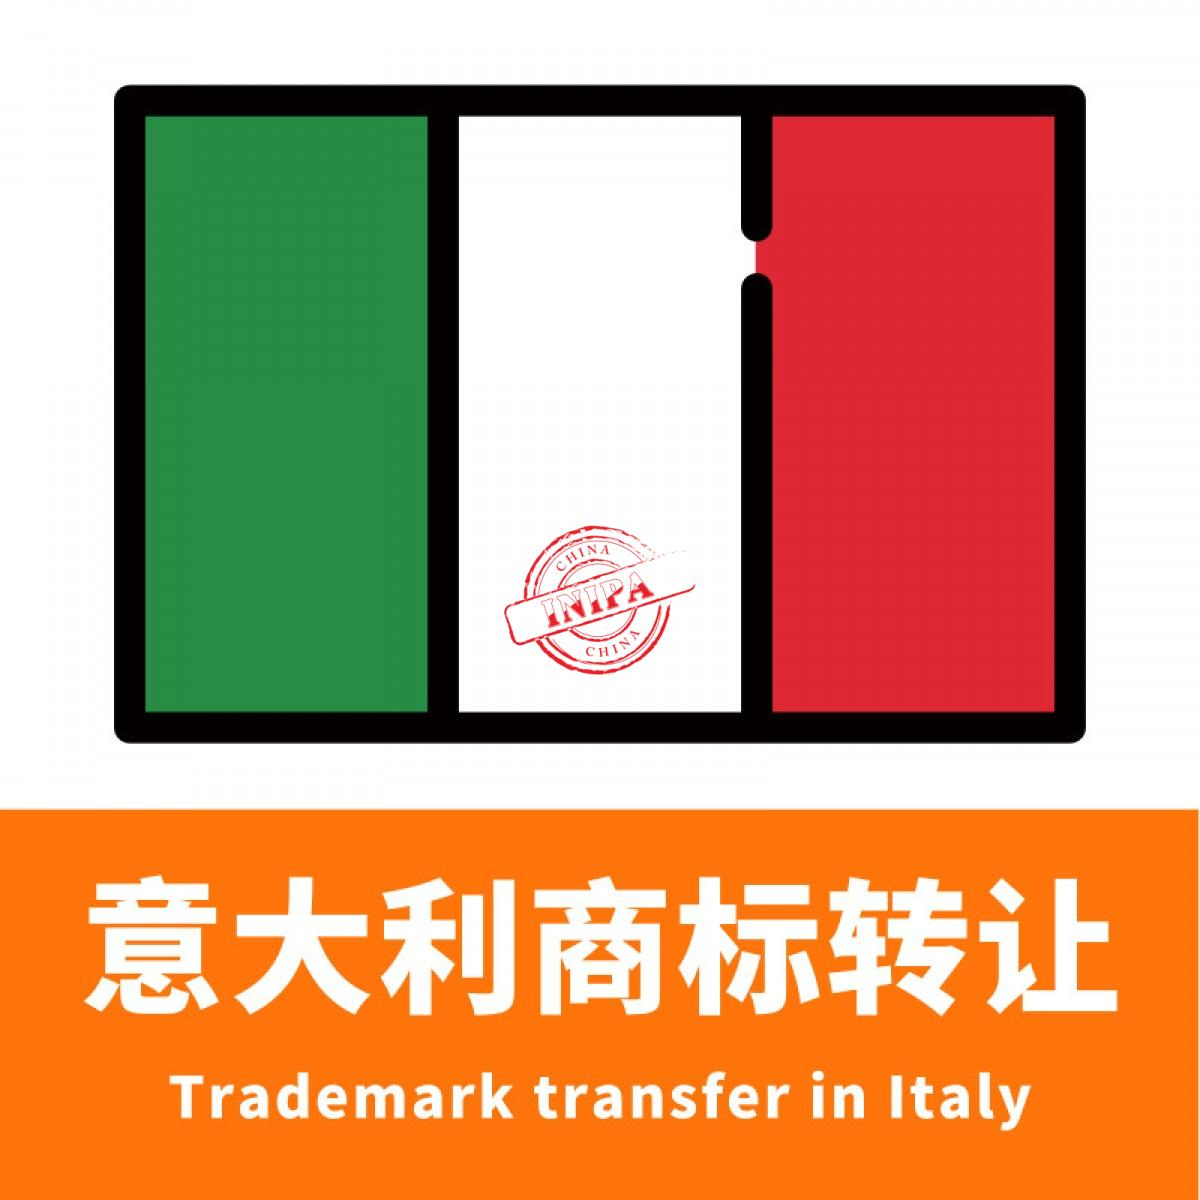 意大利商标转让/Trademark transfer in Italy